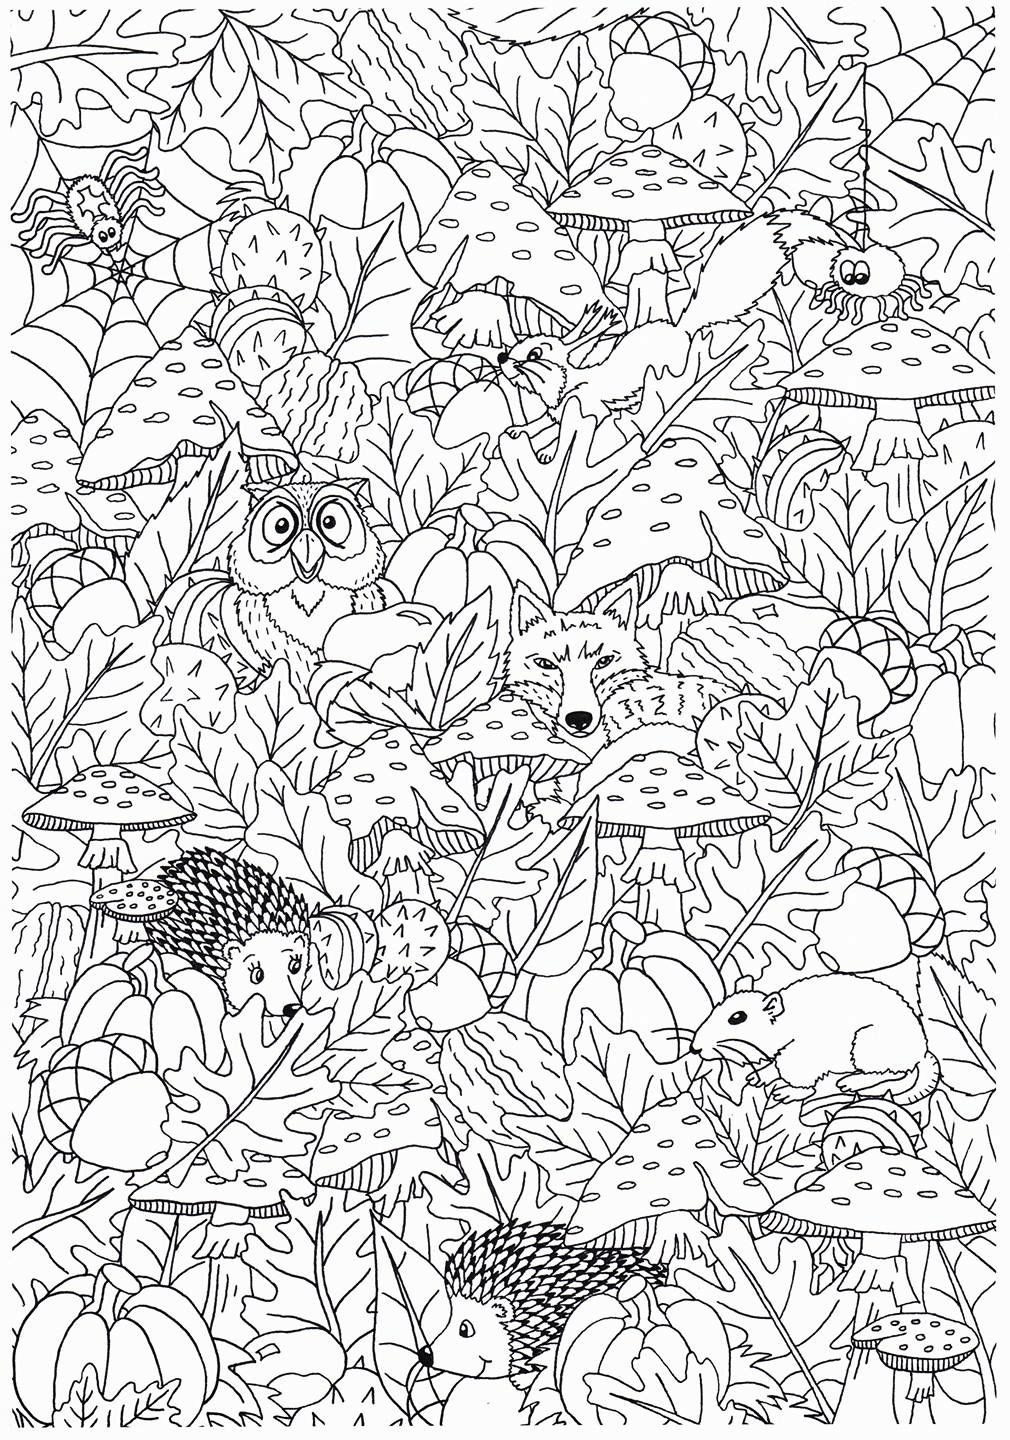 Pin By Monica Williams On Kleurplaten Coloring Books Cute Coloring Pages Coloring Pages